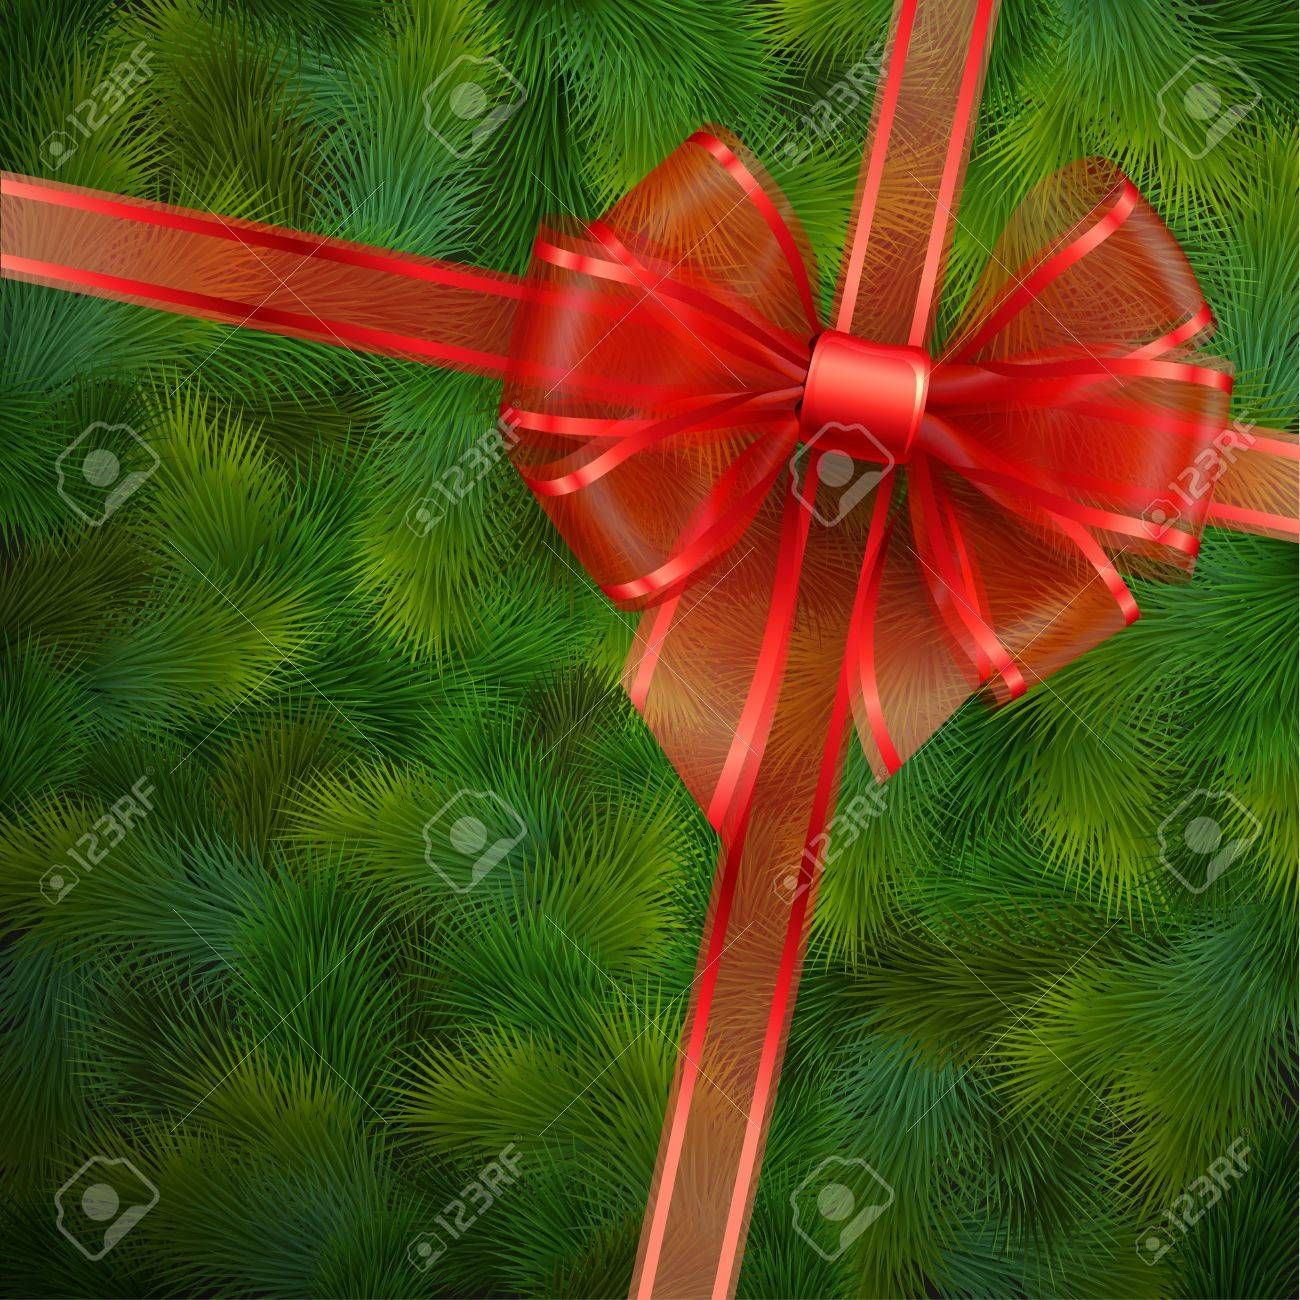 Christmas card - Red transparent bow on fir tree texture   illustration Stock Vector - 16441568